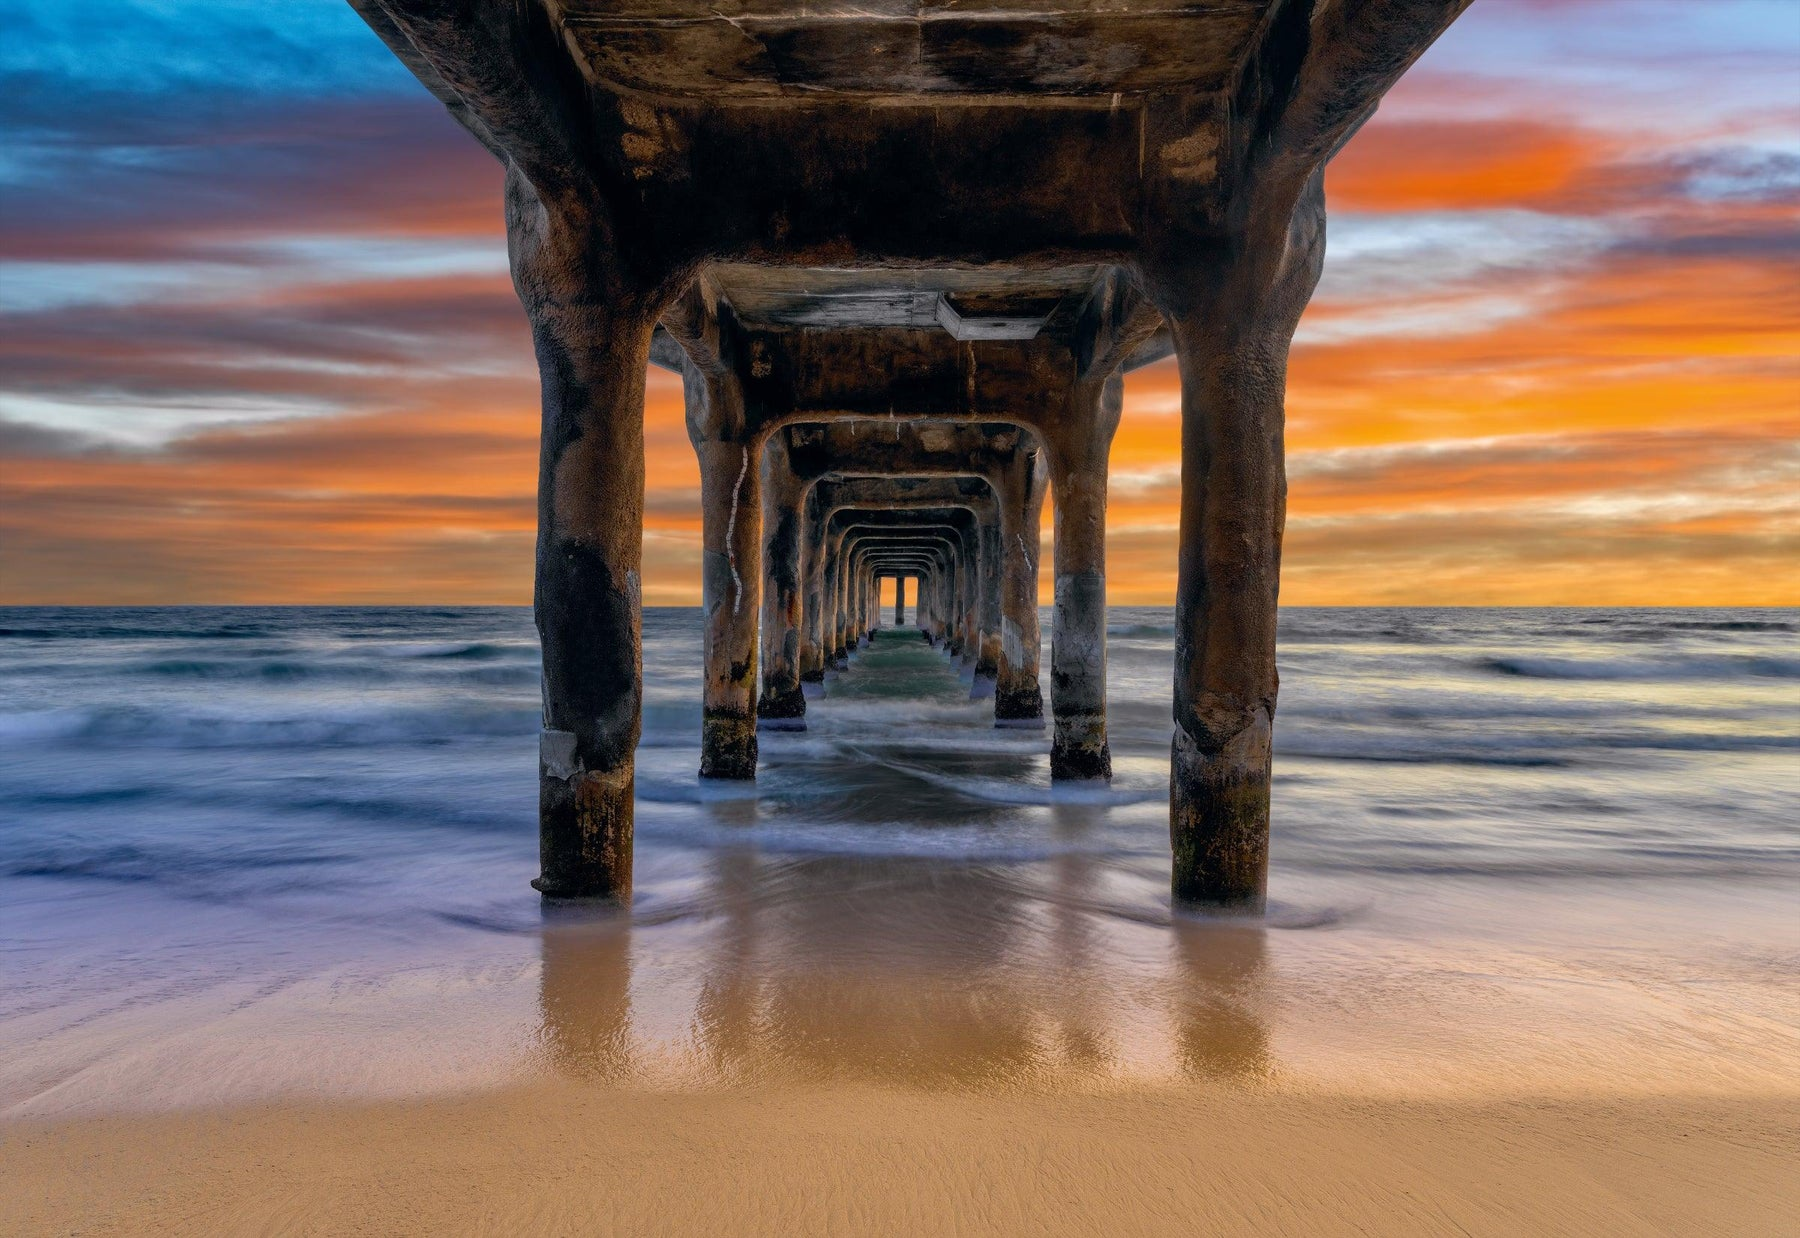 Waves crashing under the pier and onto the sand in Manhattan Beach Calidfornia during a cloudy sunset